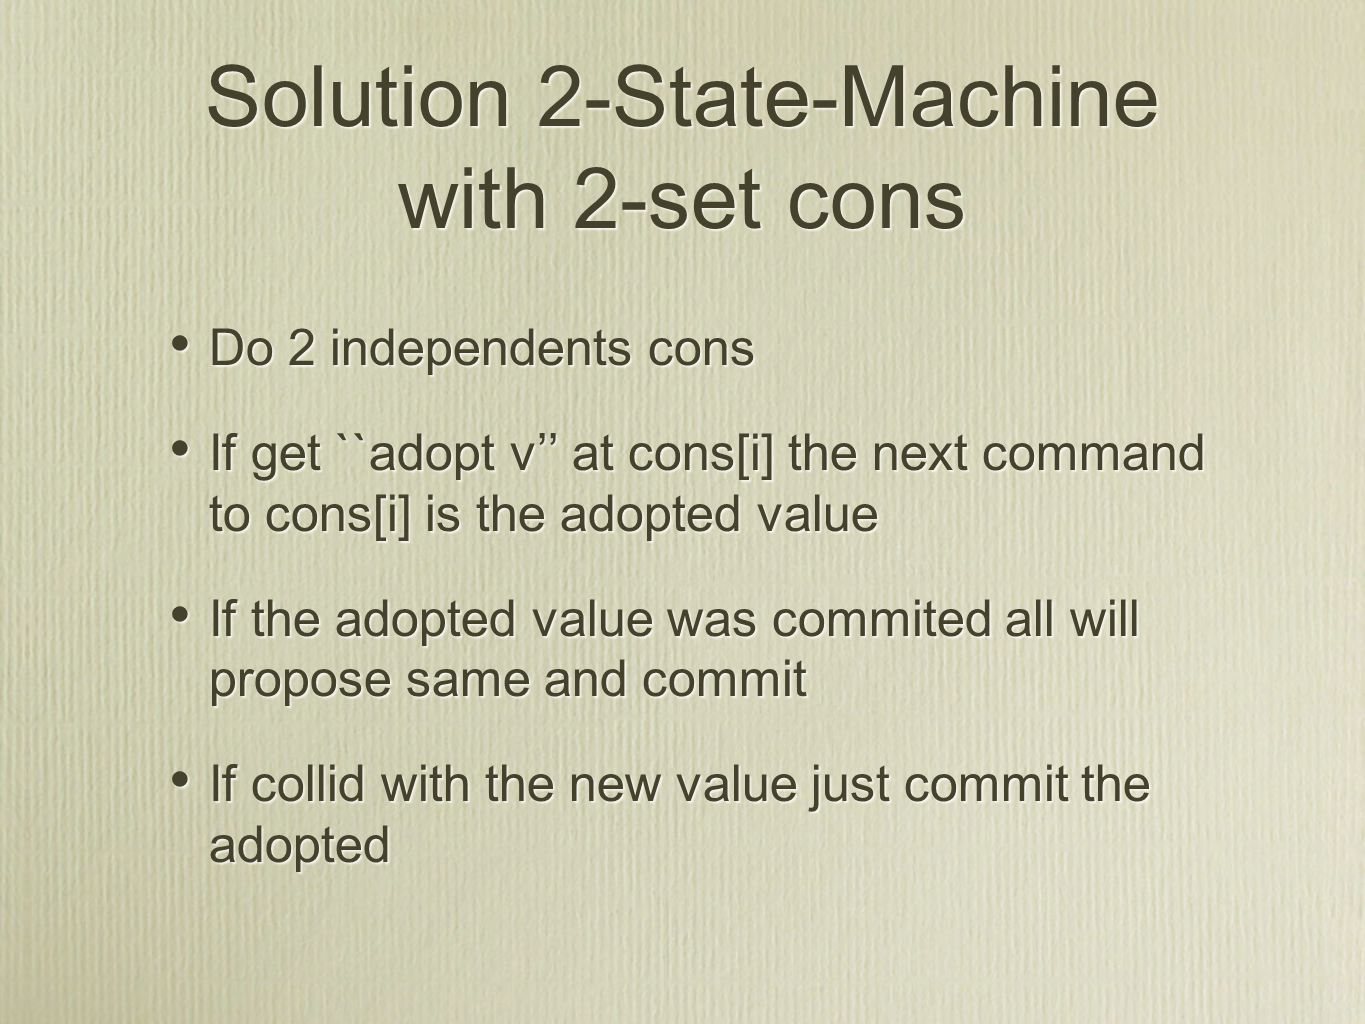 Solution 2-State-Machine with 2-set cons Do 2 independents cons If get ``adopt v'' at cons[i] the next command to cons[i] is the adopted value If the adopted value was commited all will propose same and commit If collid with the new value just commit the adopted Do 2 independents cons If get ``adopt v'' at cons[i] the next command to cons[i] is the adopted value If the adopted value was commited all will propose same and commit If collid with the new value just commit the adopted